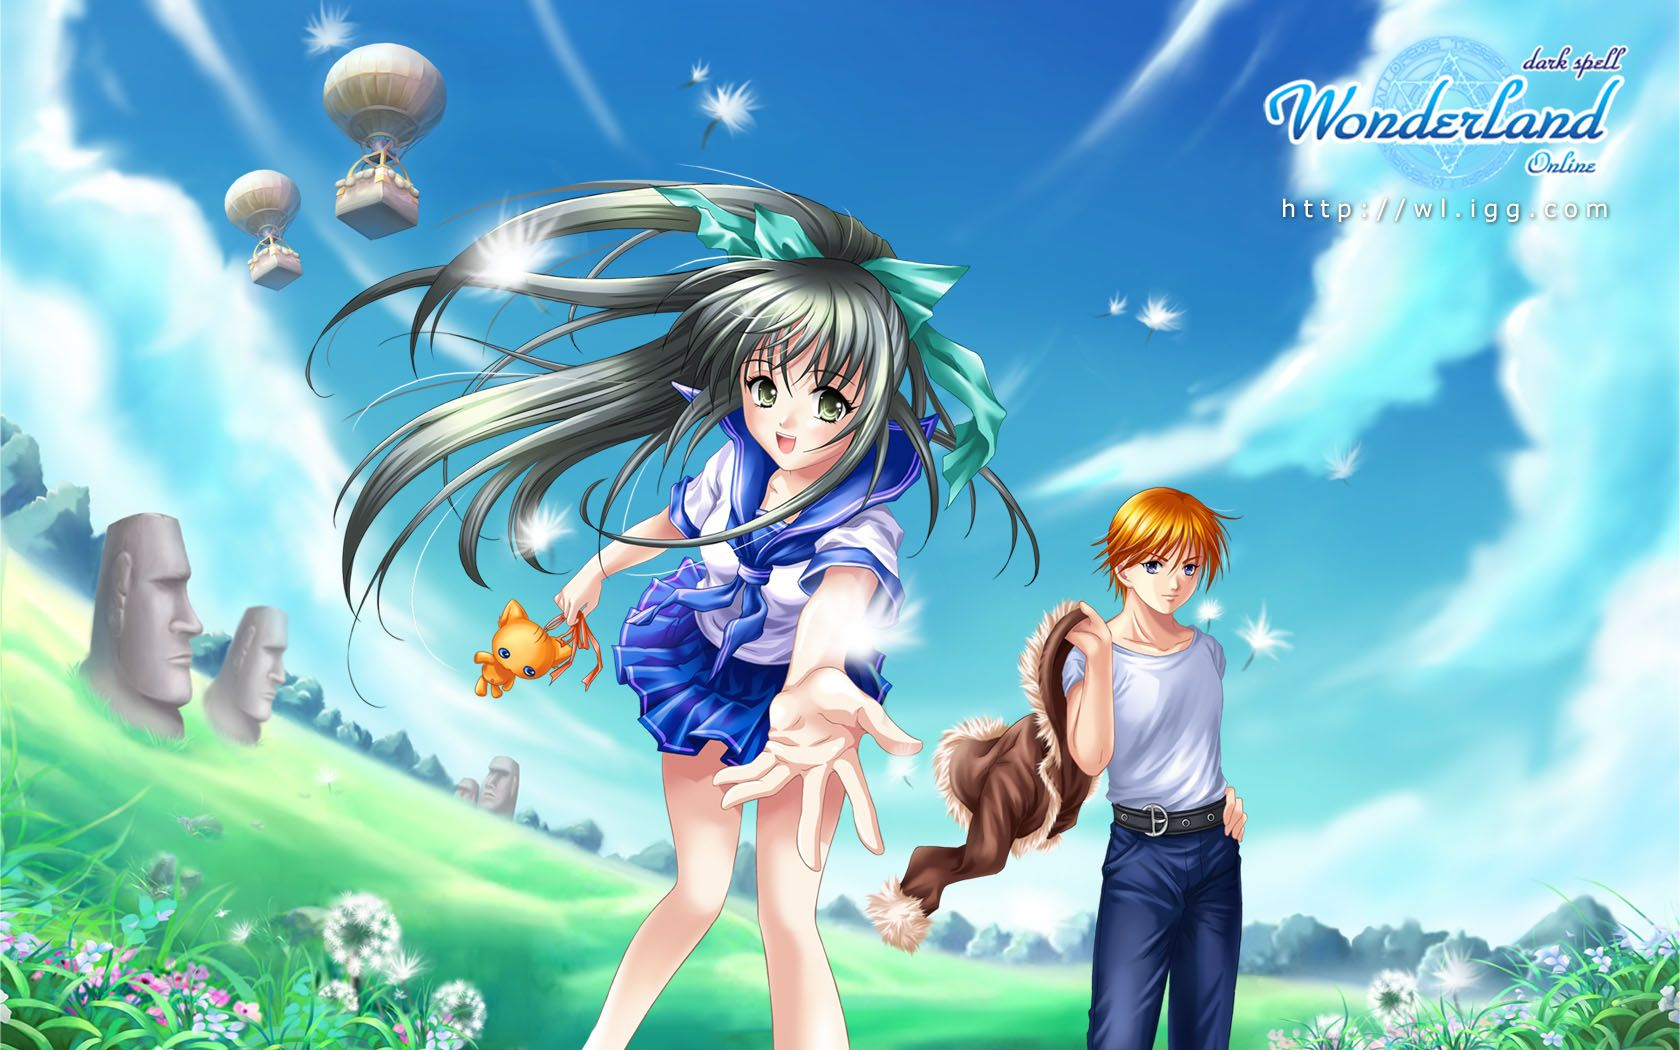 76 Games Like Wonderland Online Games, Action adventure